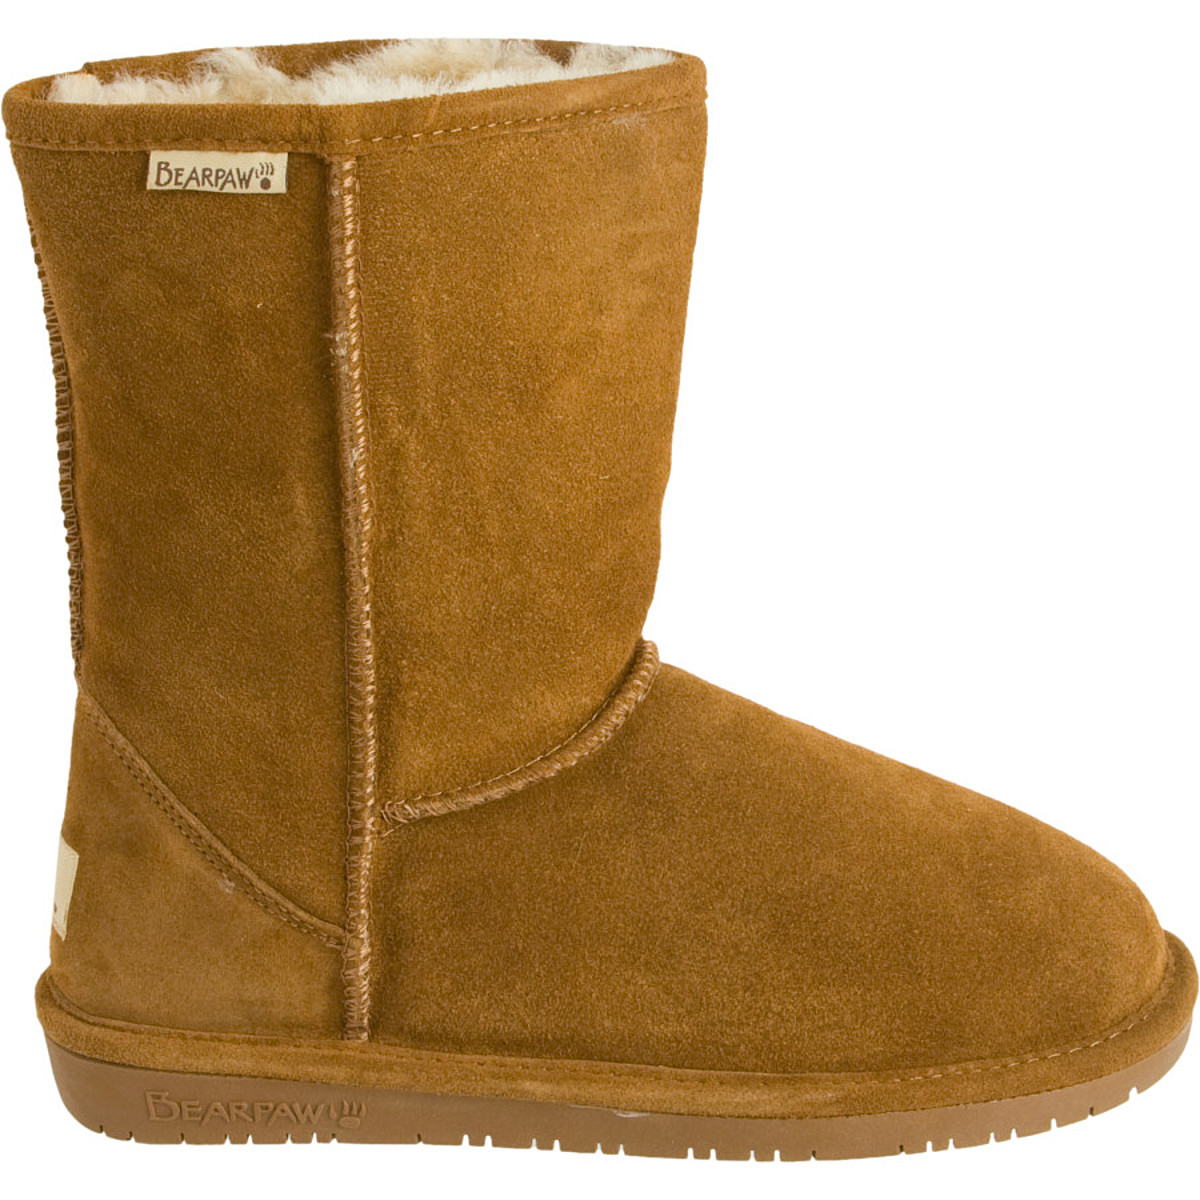 Bearpaw Emma Short Boot - Women's Hickory, 9.0